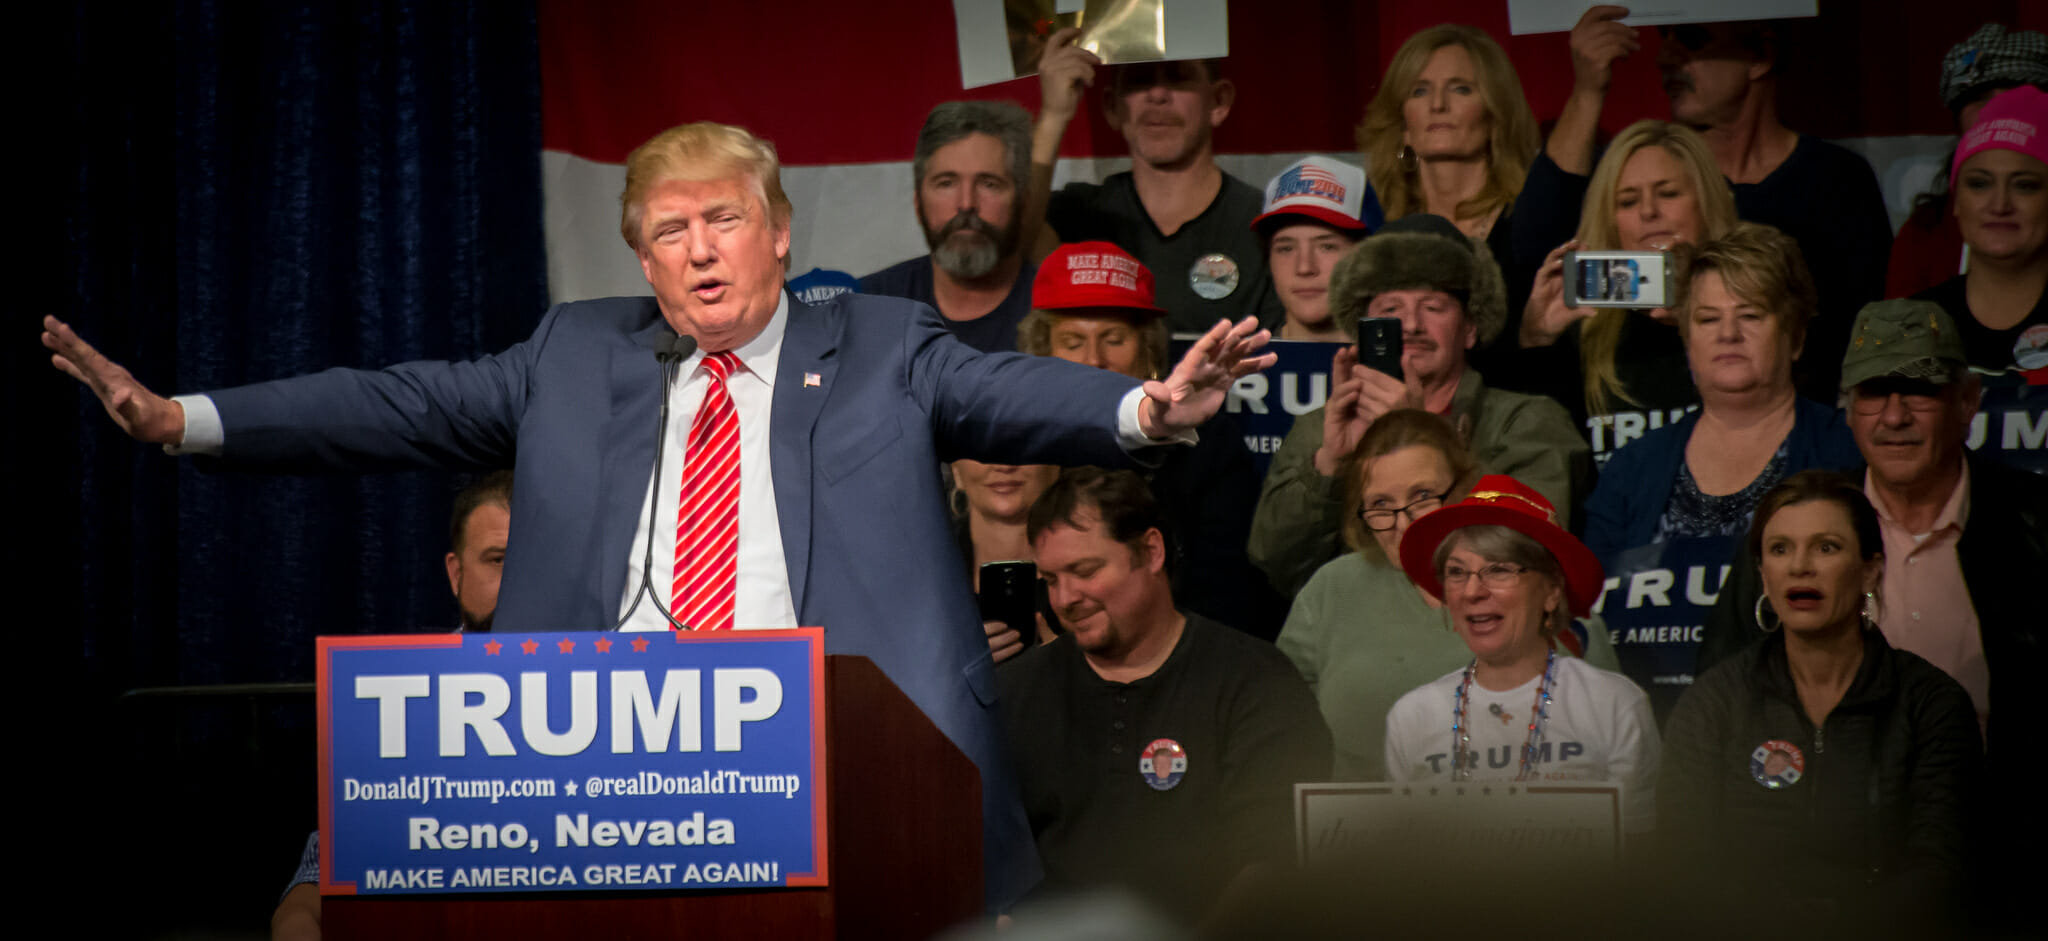 Then-candidate Donald Trump at the podium in a blue jacket and red tie.